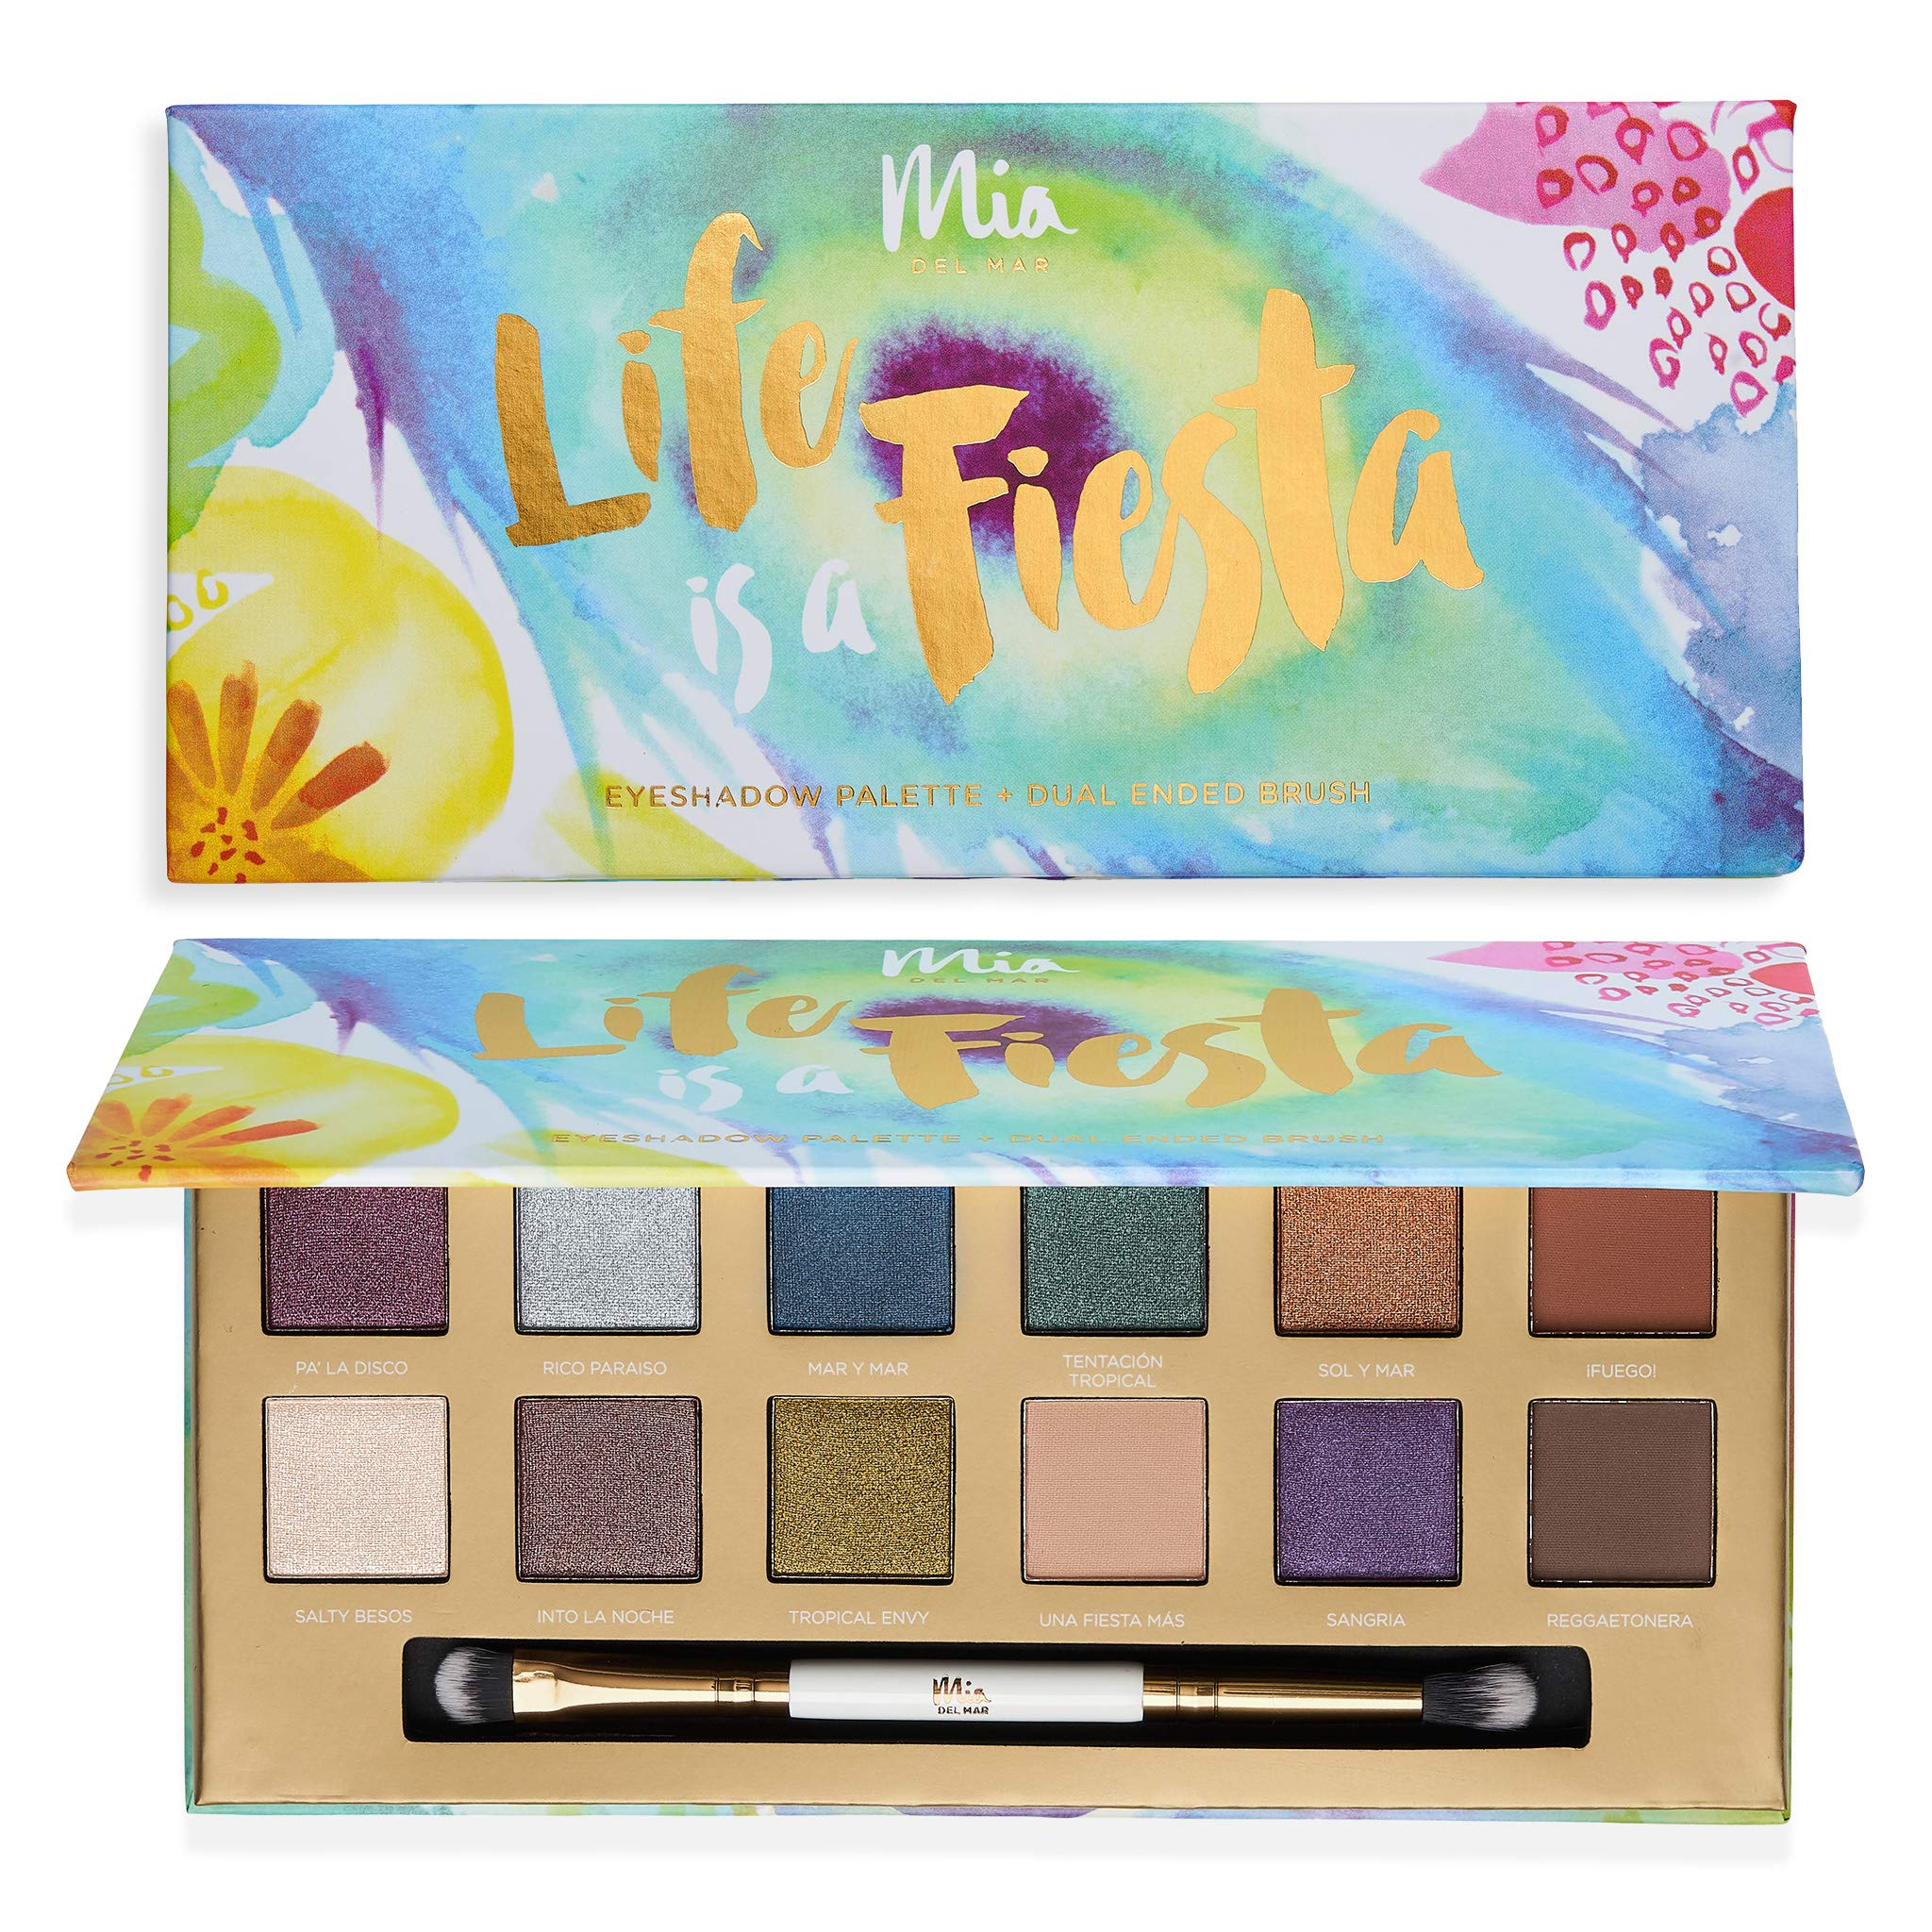 Mia del Mar 'Life Is A Fiesta' Eyeshadow Palette + Dual Ended Brush - 12 Bold and Versatile Tones: Shimmery & Matte Hues. Vegan And Clean Skin Care.